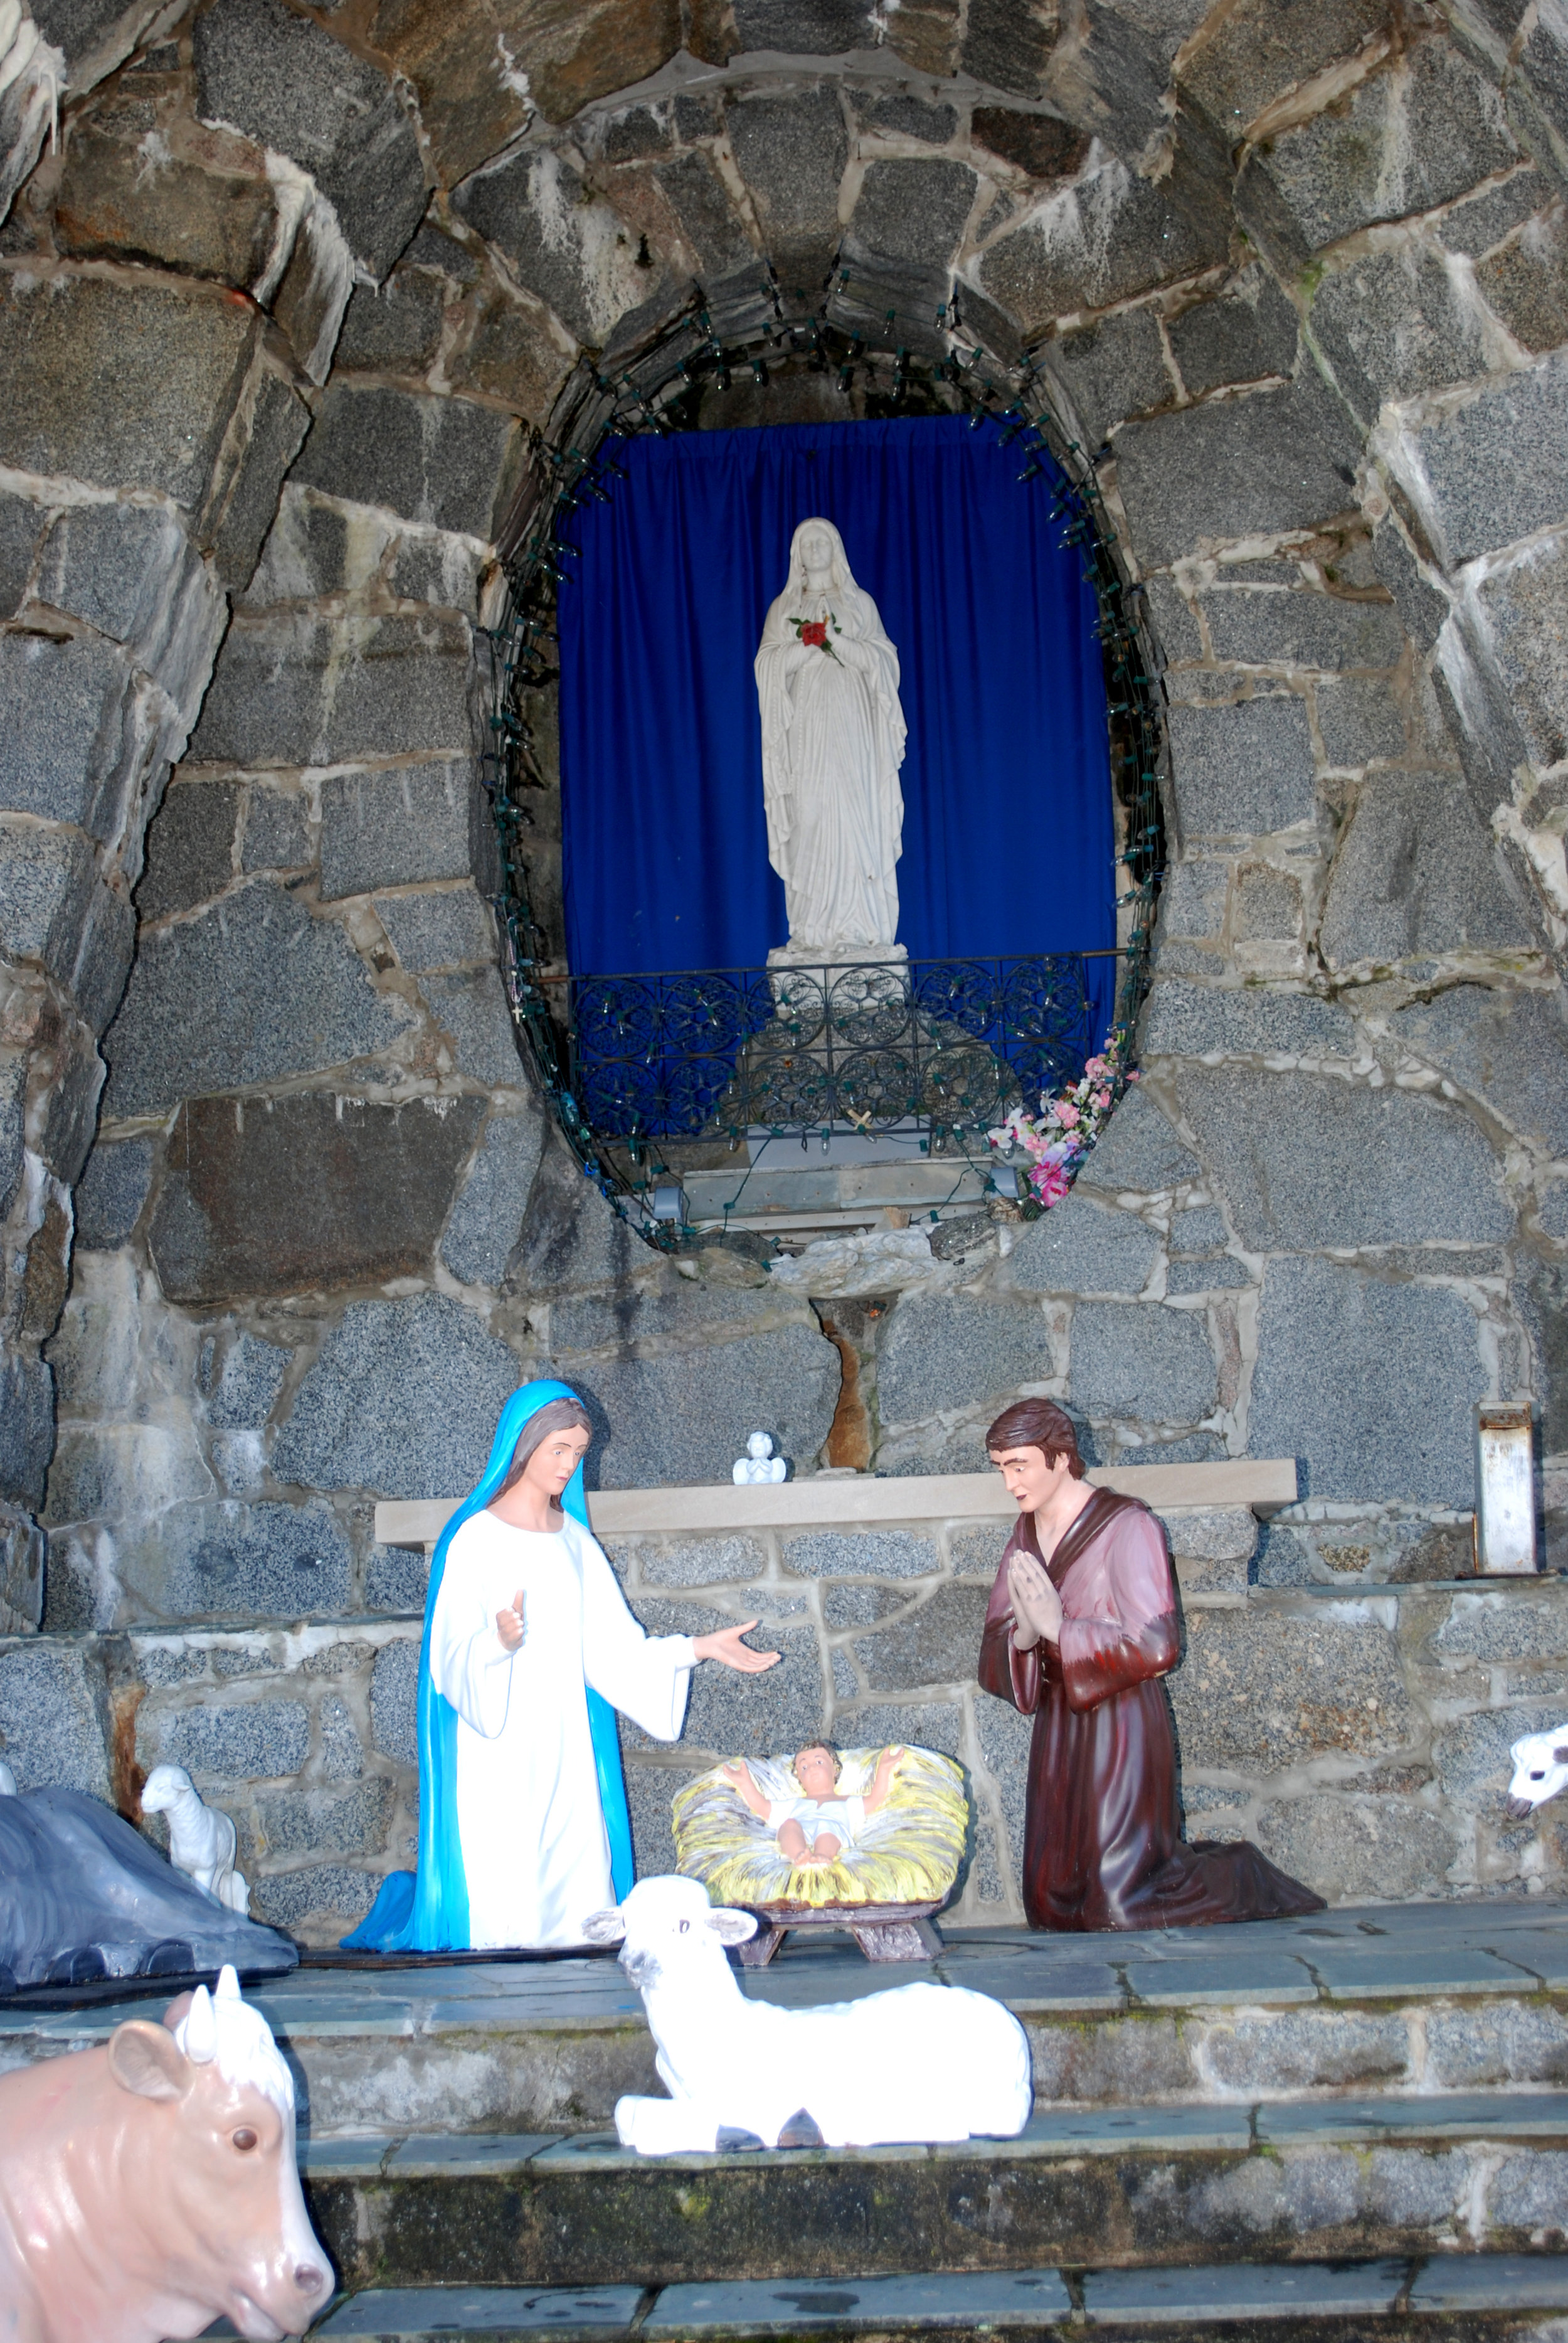 Christmas Prelude – Candlelight Caroling - Saturday, December 6, 2019, 6:30 pmSt. Anthony's Franciscan Monastery, 26 Beach Ave, Kennebunk ME 04064, Outside in front of the stone grotto with the manger, 207-967-4865Join the Franciscan Friars for an evening of Christmas songs by candlelight. Christmas Prelude starts Thursday December 5th and ends Sunday December 15th. Be sure to stay at the Franciscan Guest House during Prelude. Contact the hotel for reservation prices and details. For more information about Christmas Prelude, click here.